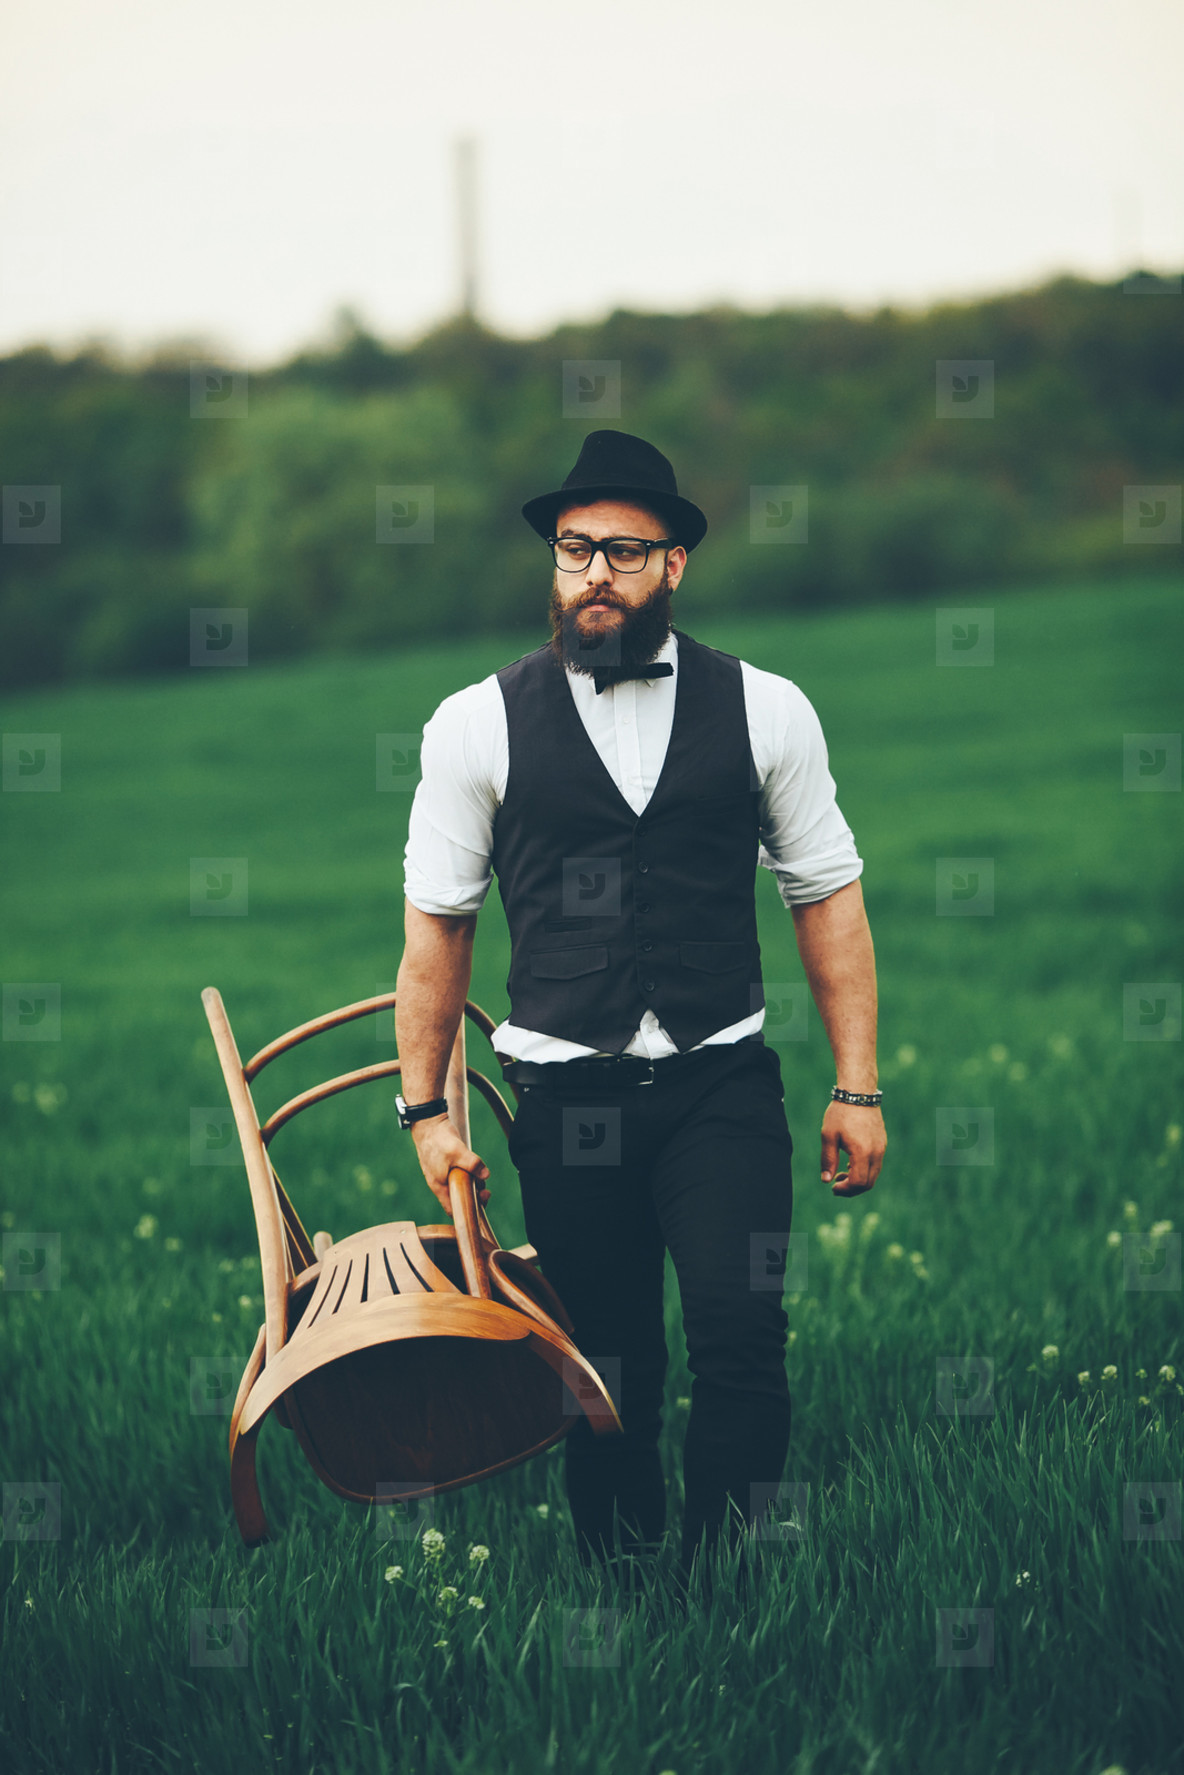 Bearded man carries a chair on the field